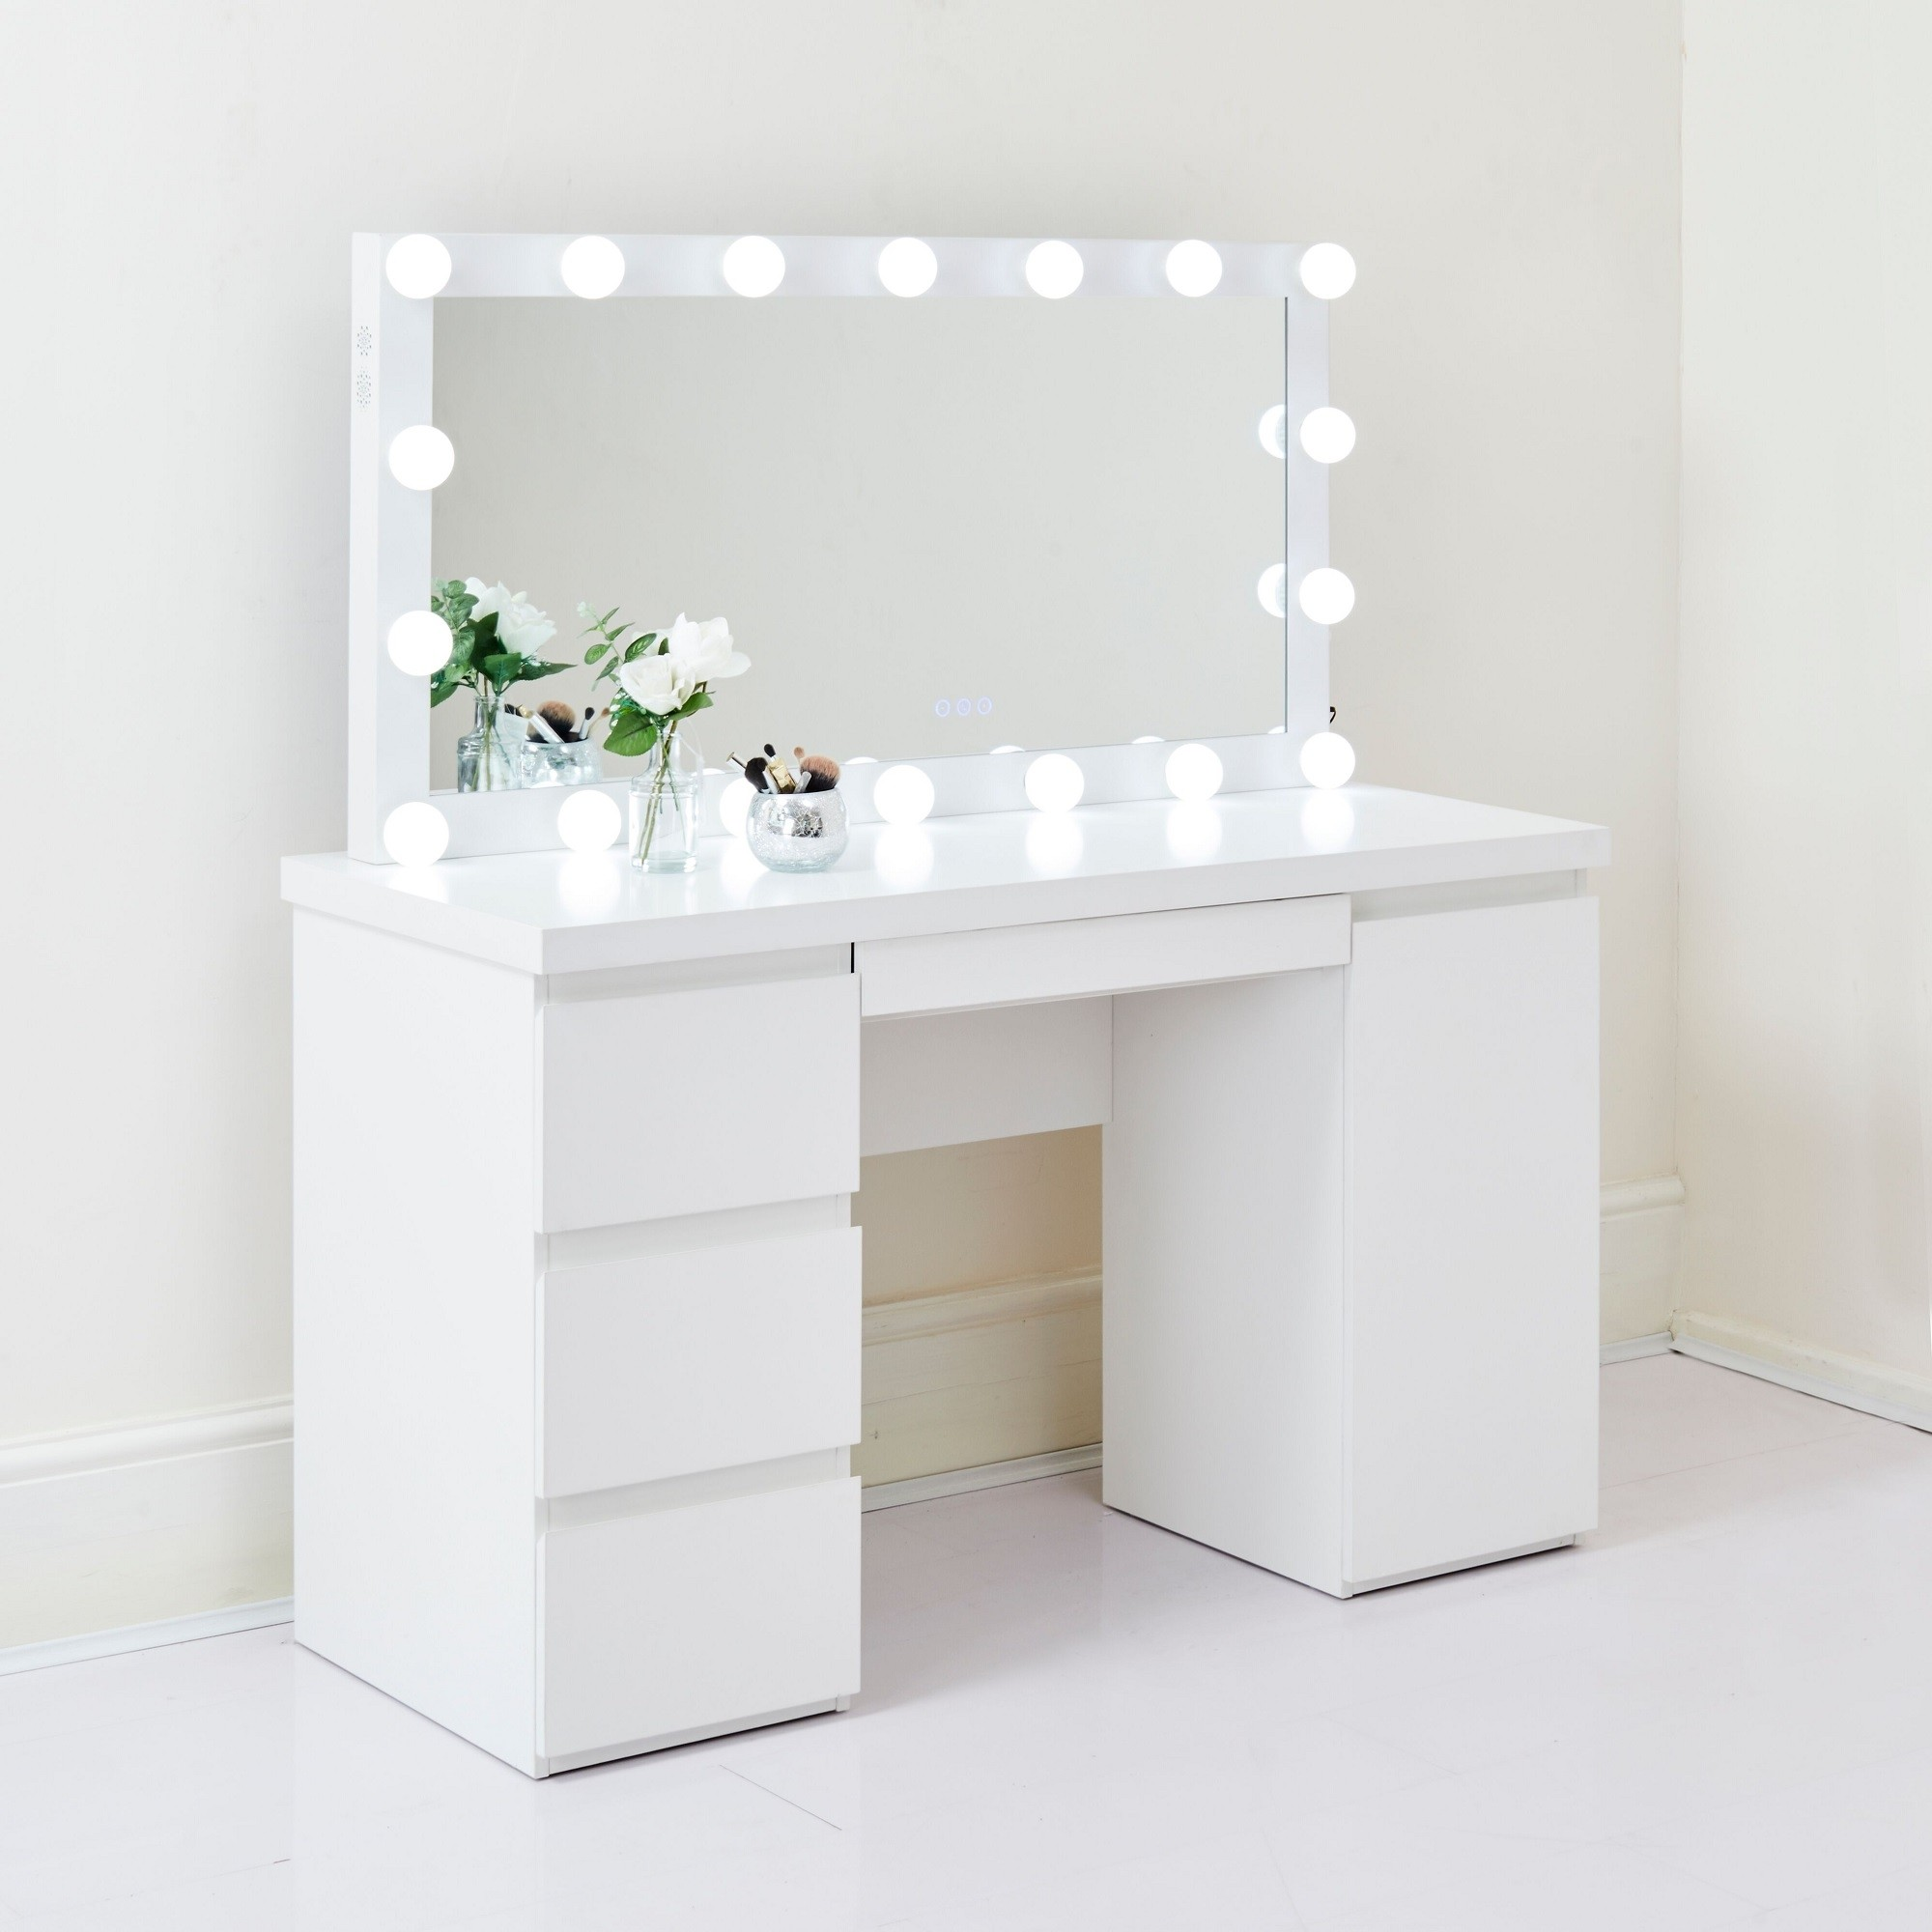 Led Hollywood Mirror With Dressing Table Bulb Lights Makeup Bluetooth Speaker Ebay